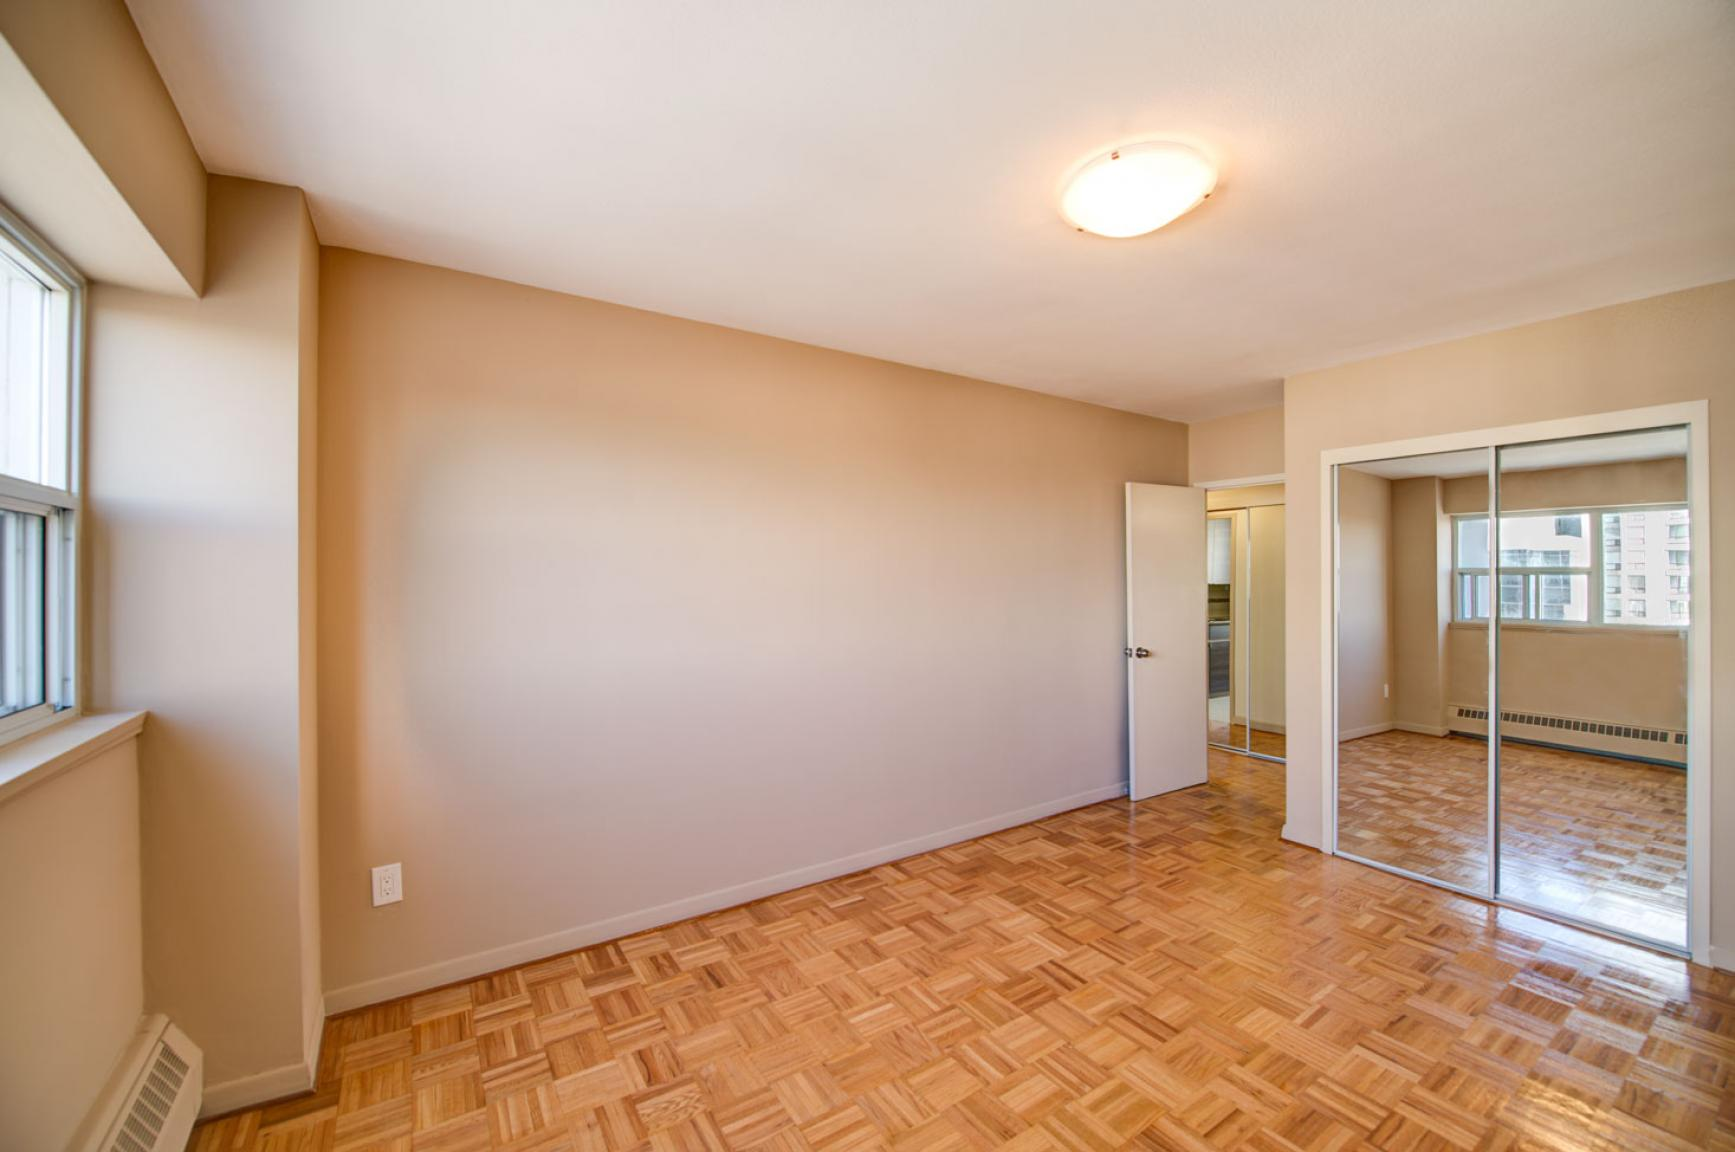 1 bedroom Apartments for rent in Toronto at Dunfield Tower - Photo 19 - RentersPages – L138879